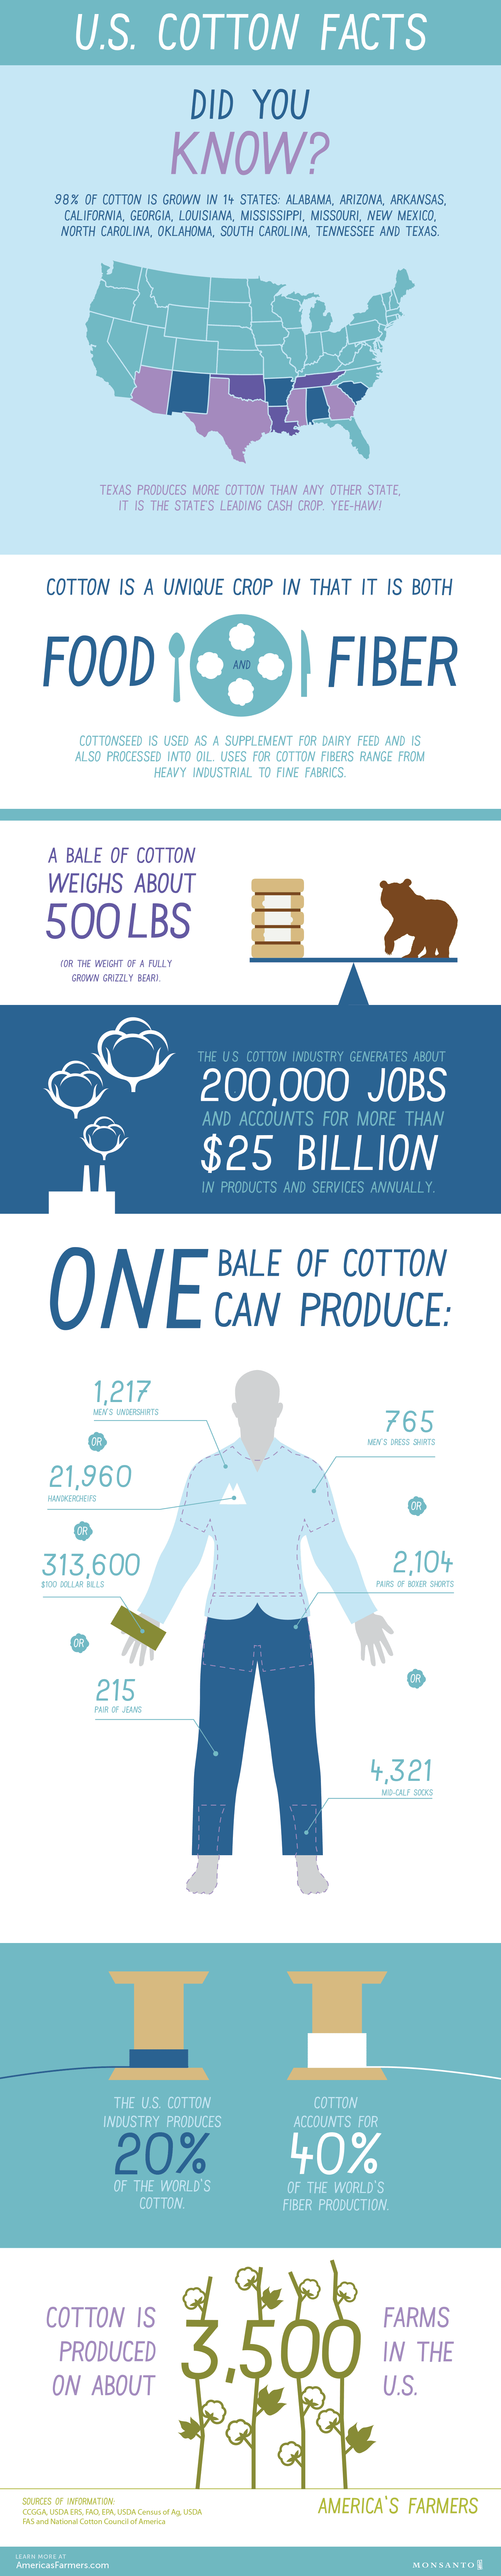 Check Out This Cool Infographic On Us Cotton Facts